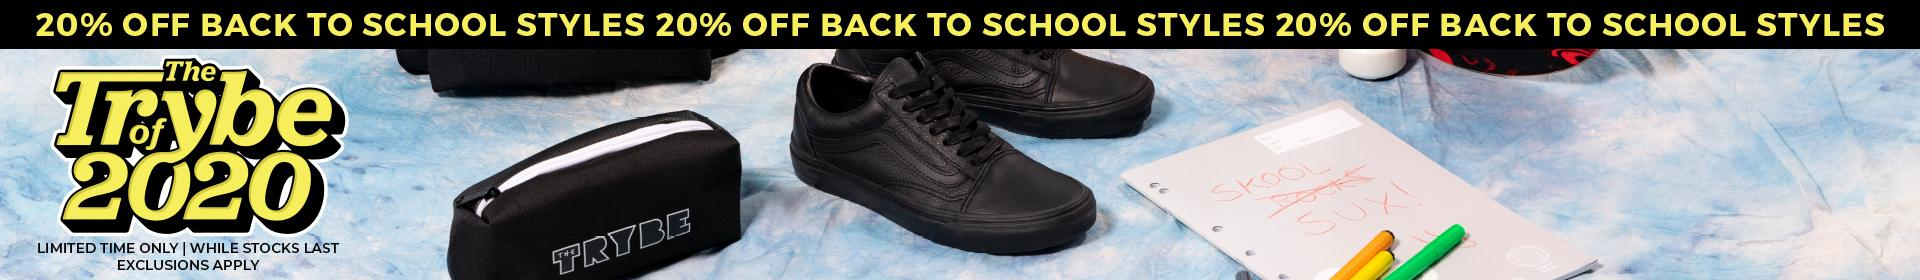 The Trybe of 2020 - Shop Back to School Styles